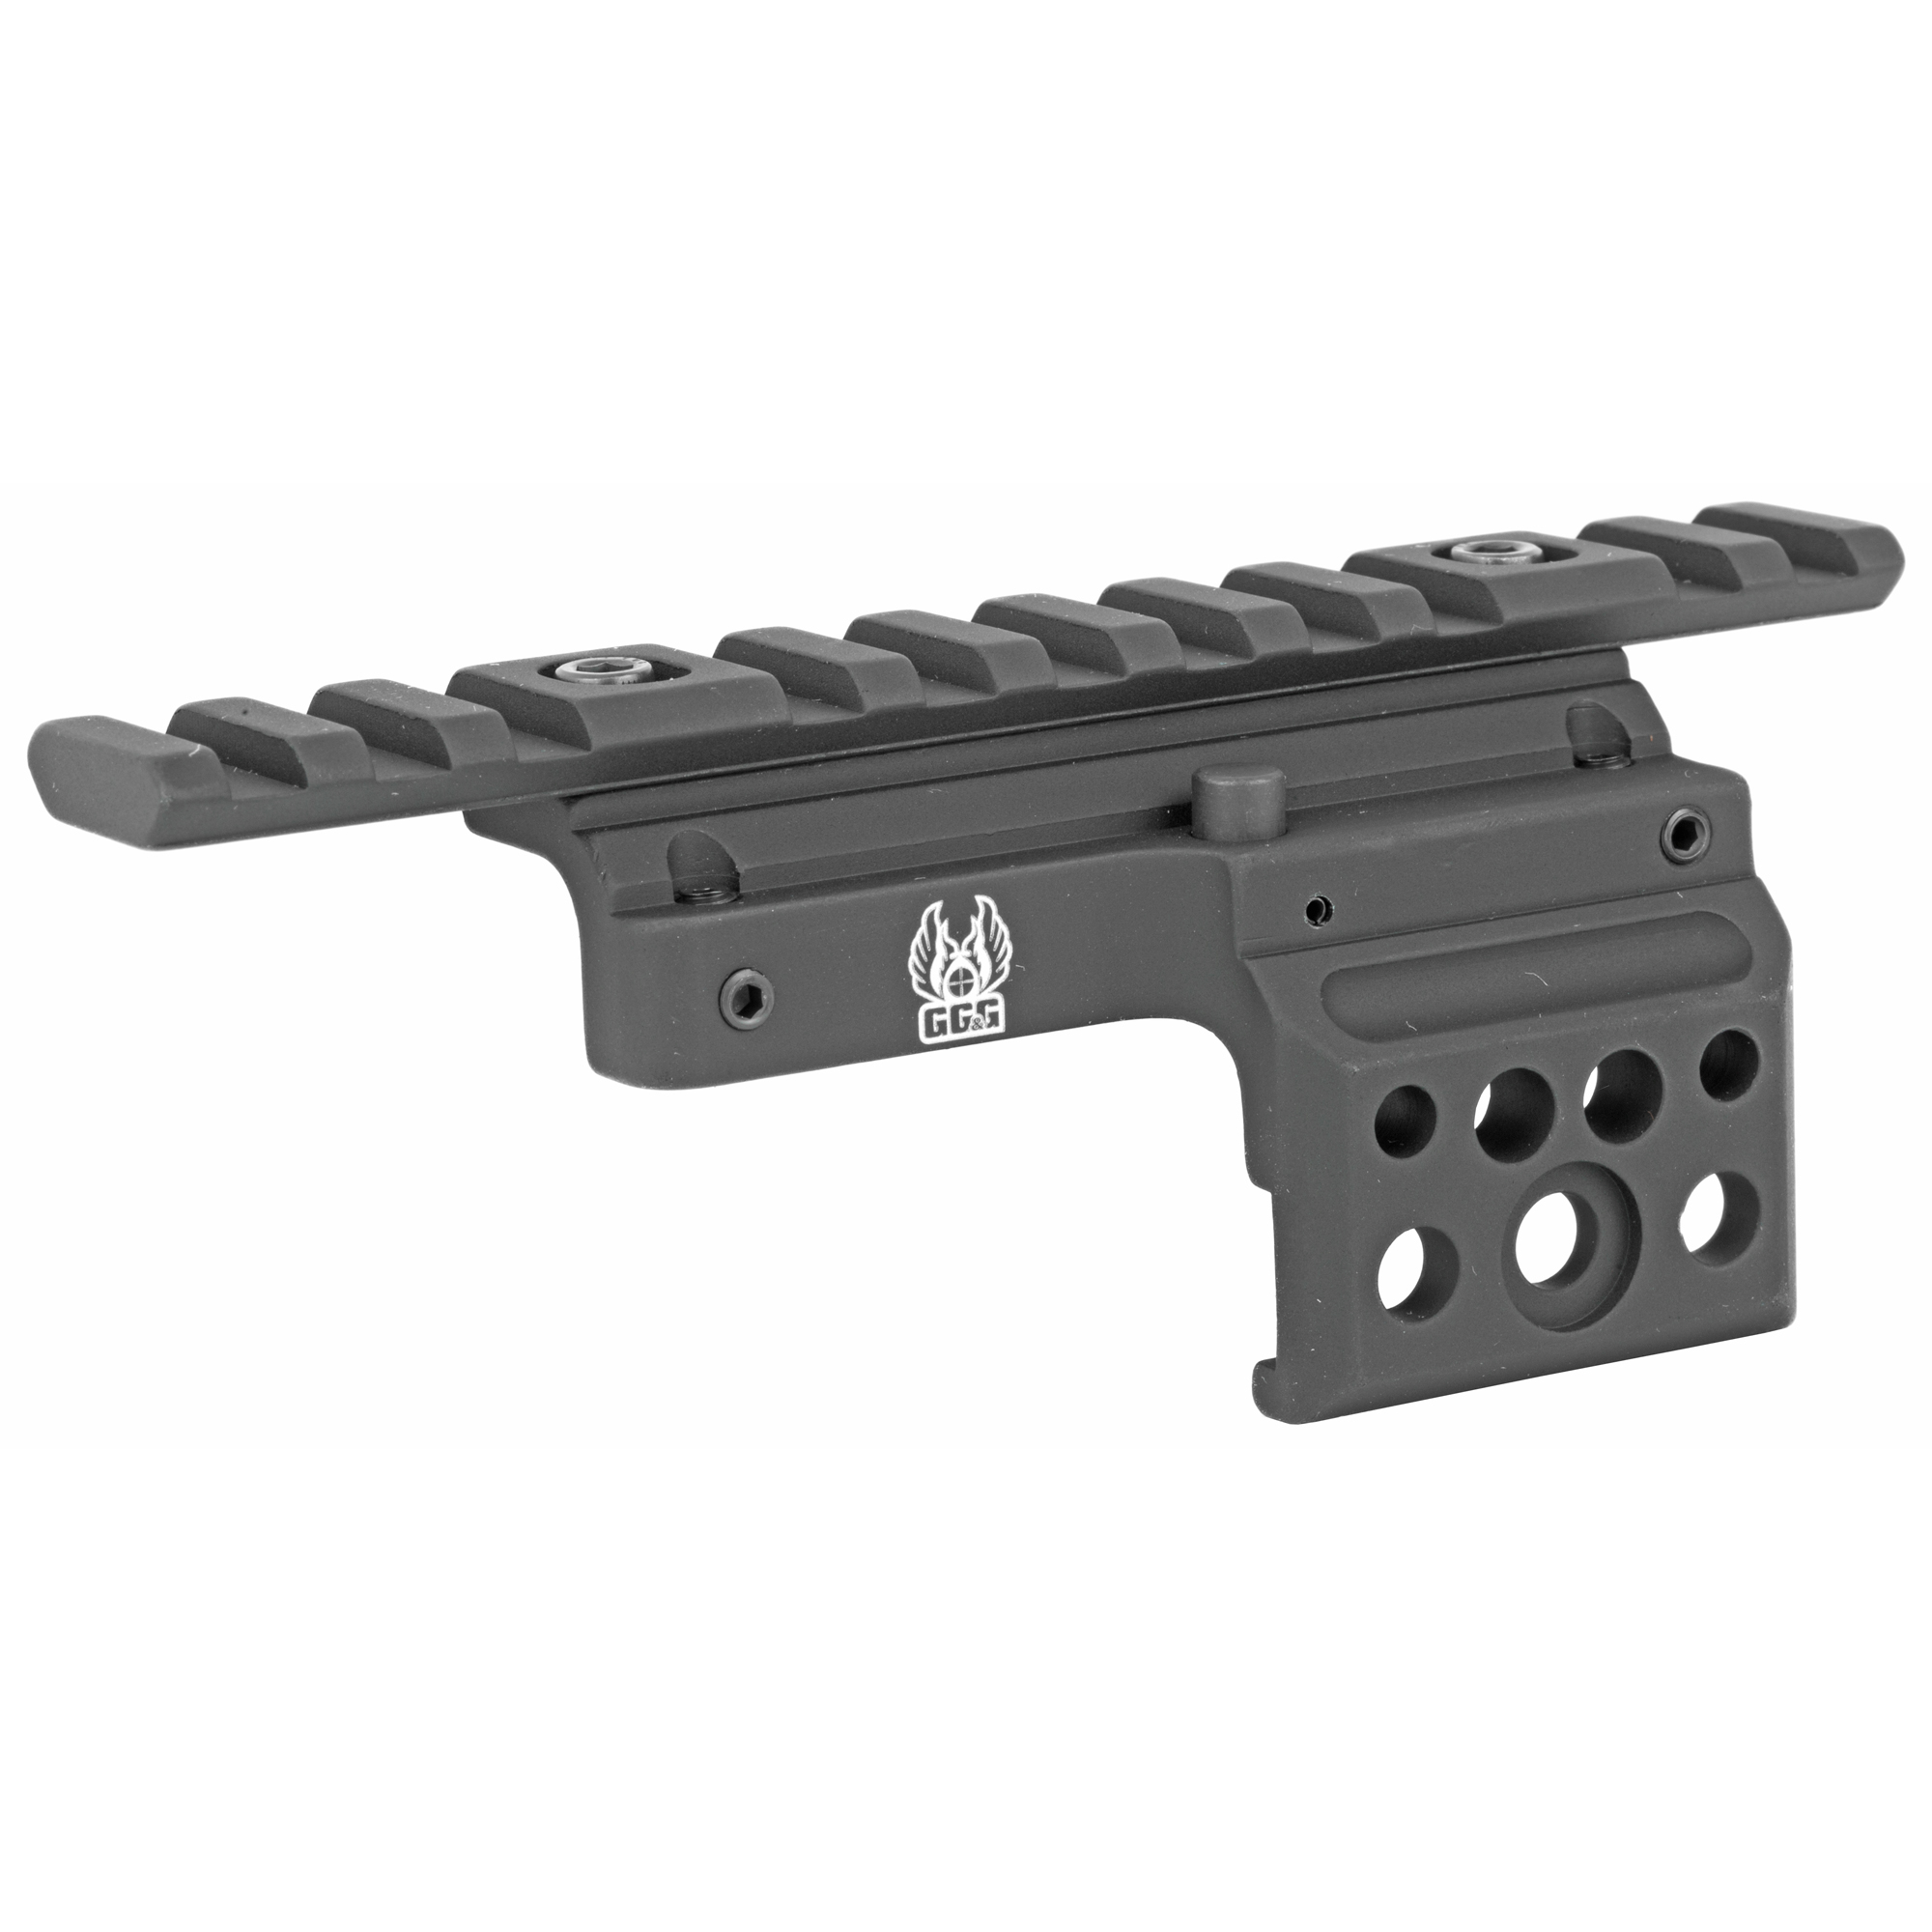 """The series 181 Ruger Mini-14 rifle has remained a very popular rifle with hunters"""" outdoorsmen and women"""" and for home defense. Adding a scope mount and magnified scope or red dot sight is a great addition to your Mini-14. The GG&G Mini-14 Side Mounted Scope Mount provides a solid and rugged mounting base for your optic."""